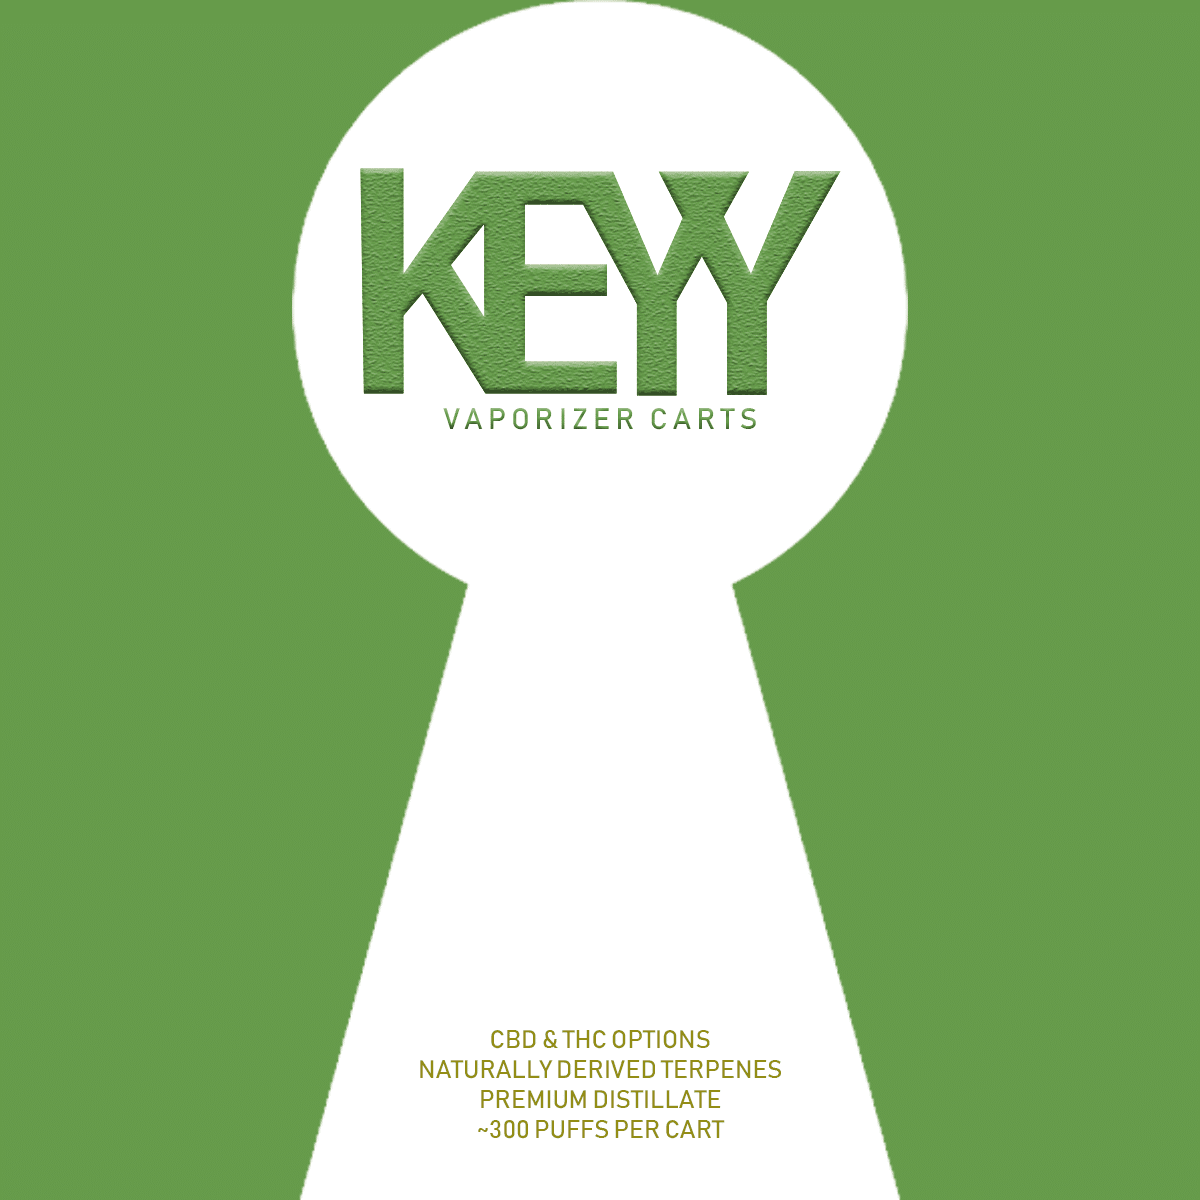 Keyy Concentrates Vape Pen Cartridges by Green Society - Image © 2018 Green Society. All Rights Reserved.